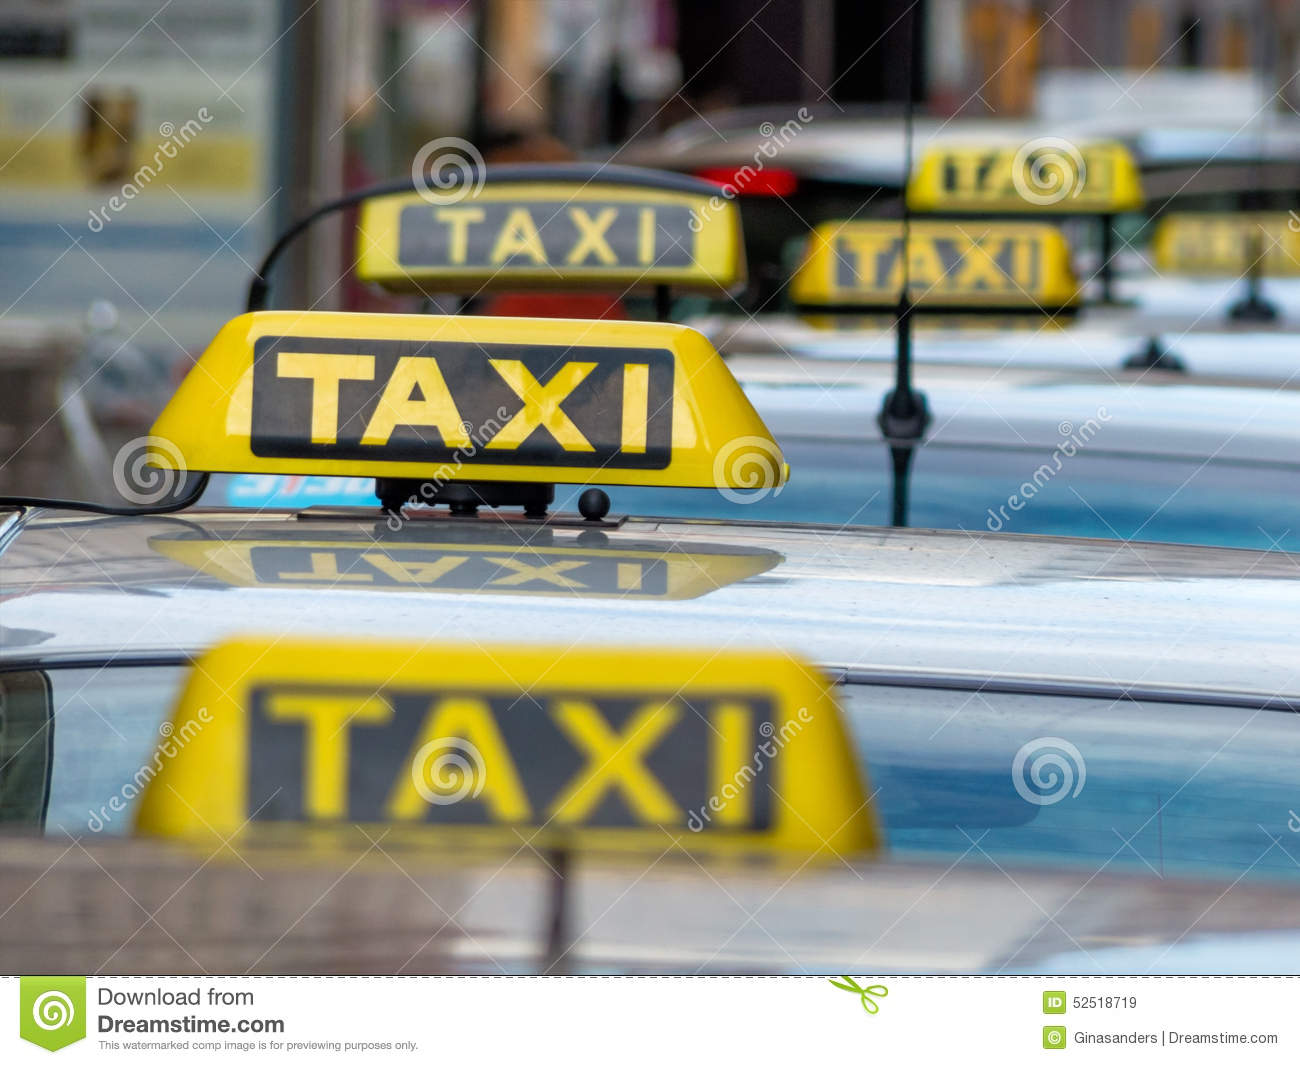 Taxis σε μια τάξη ταξί